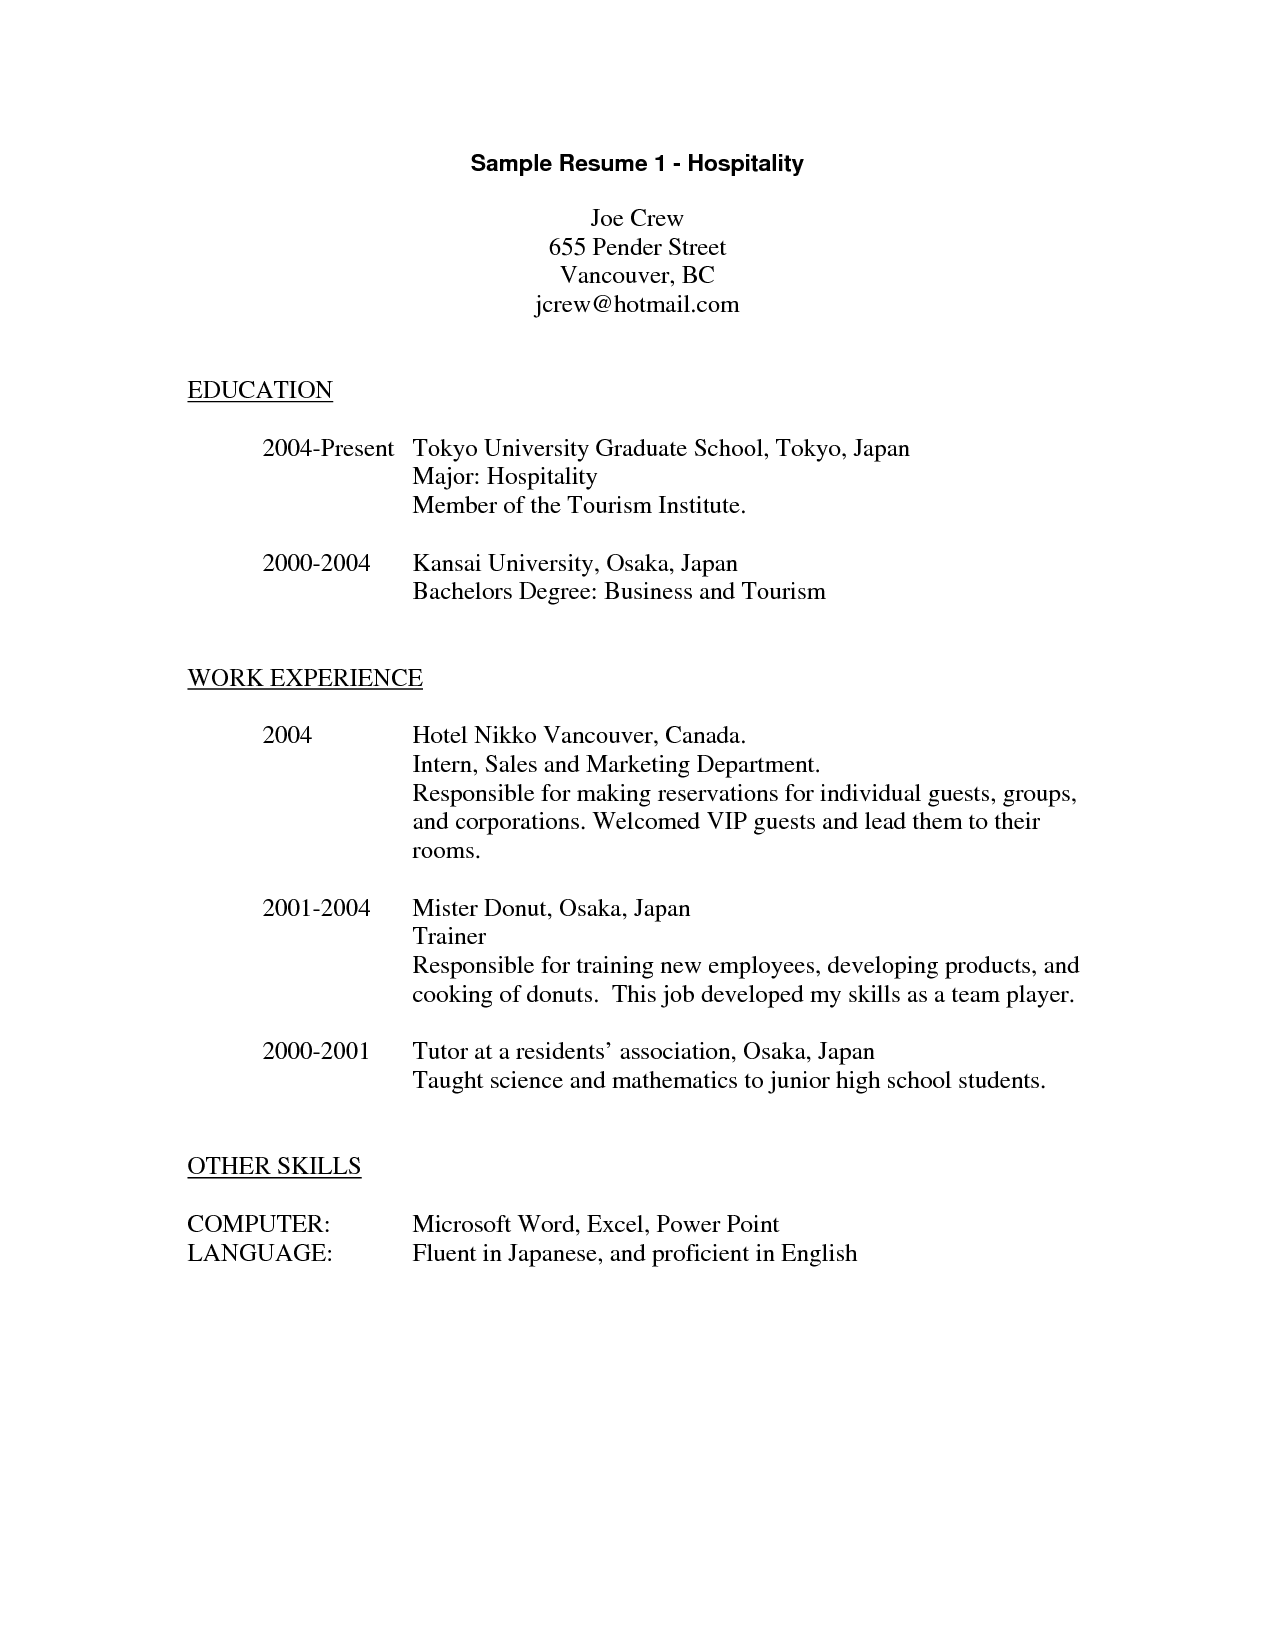 Sample Resume For Hospitality Industry Sample Resume For